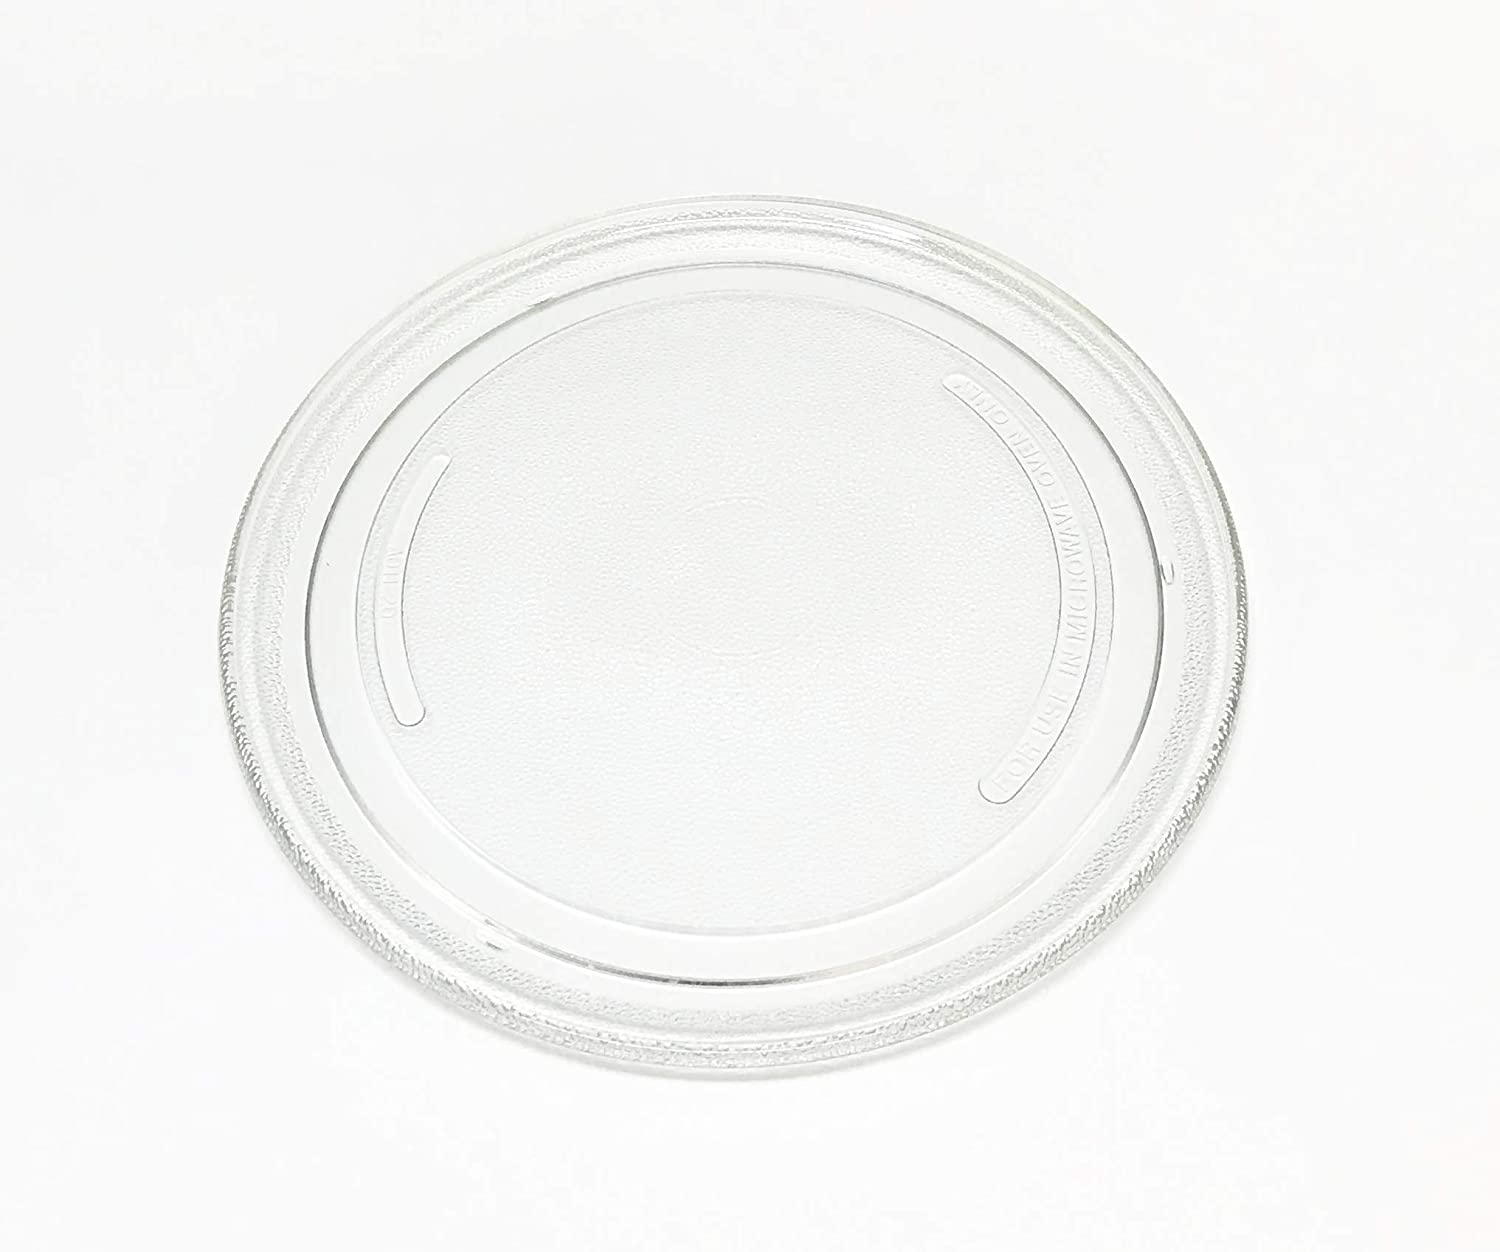 OEM Sharp Microwave Glass Plate Turntable Shipped with R209AK, R-209AK, R209AW, R-209AW, R209KK, R-209KK